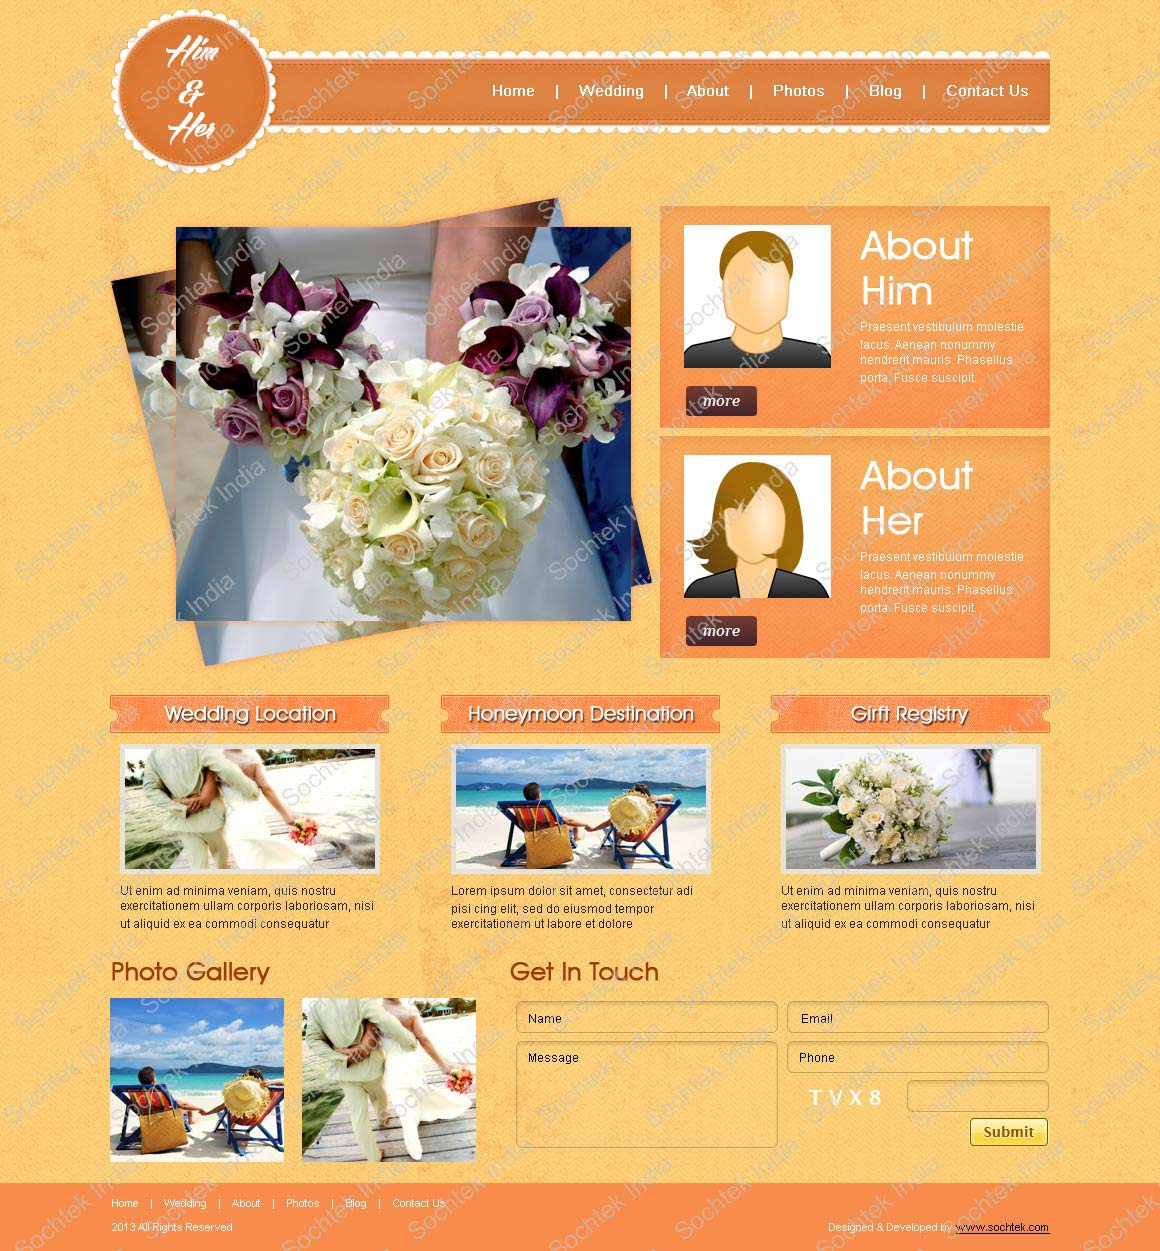 wedding-website-design10